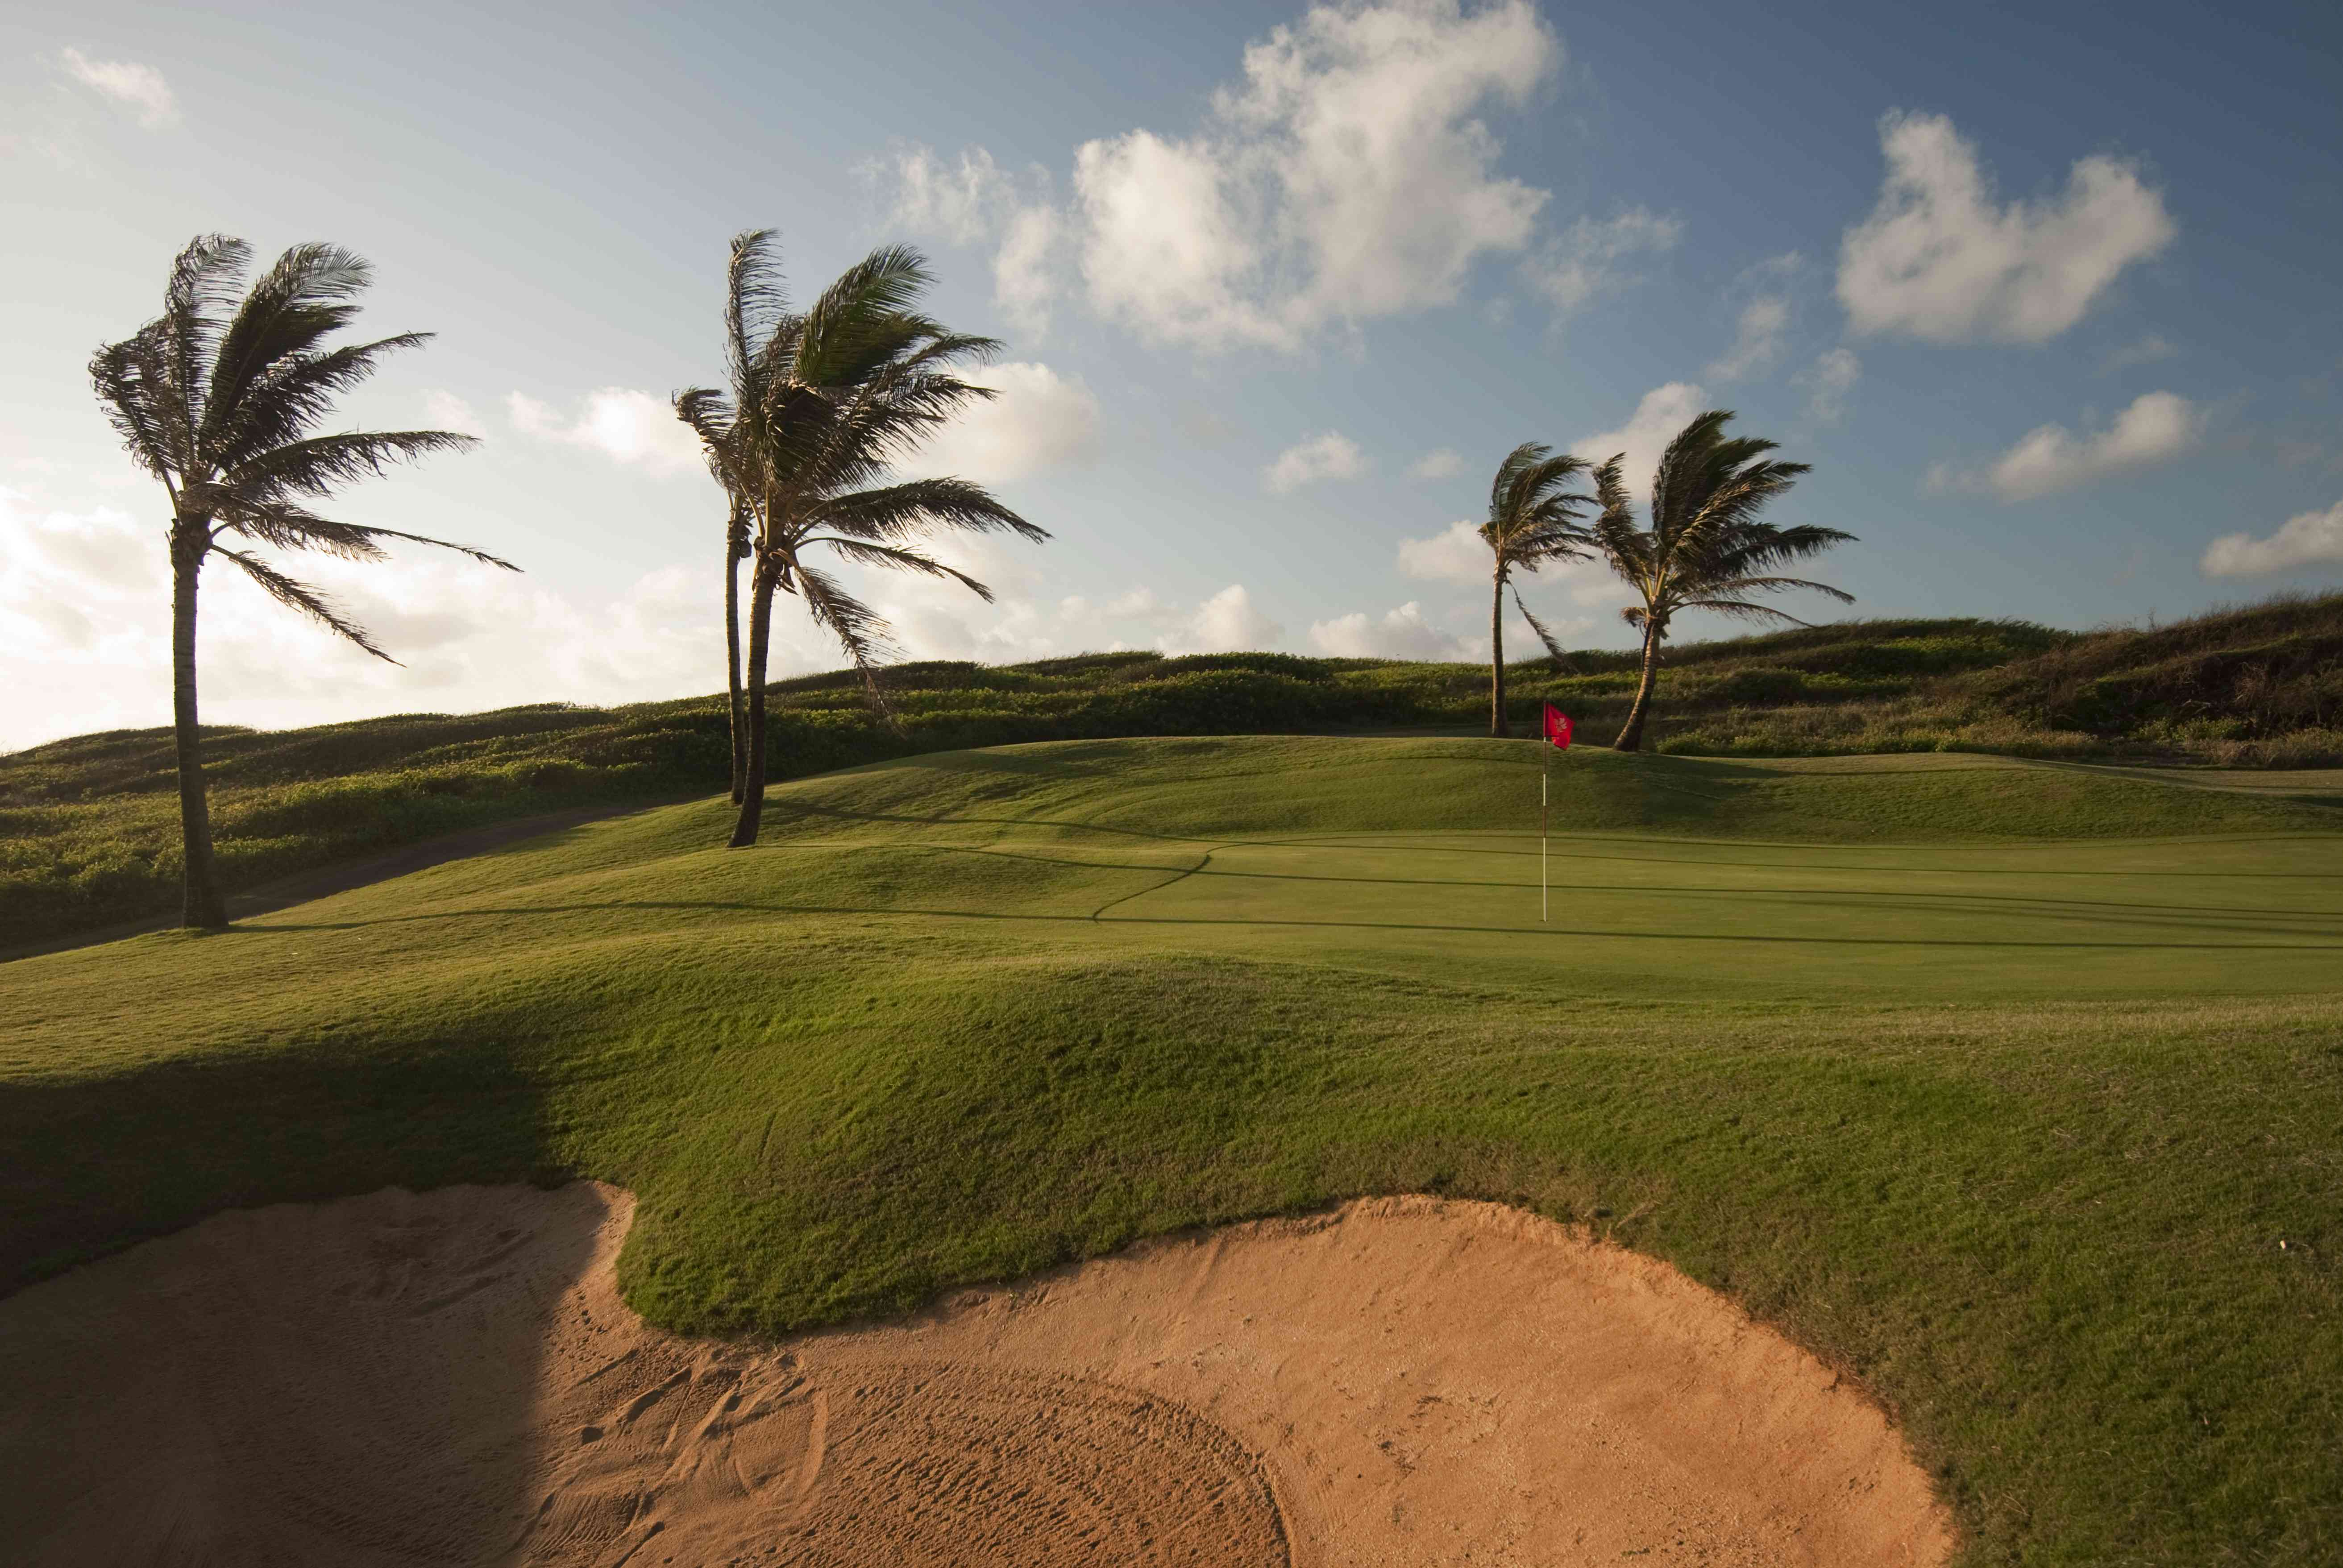 palm trees blowing in the wind on a golf course at Poipu Bay Resort